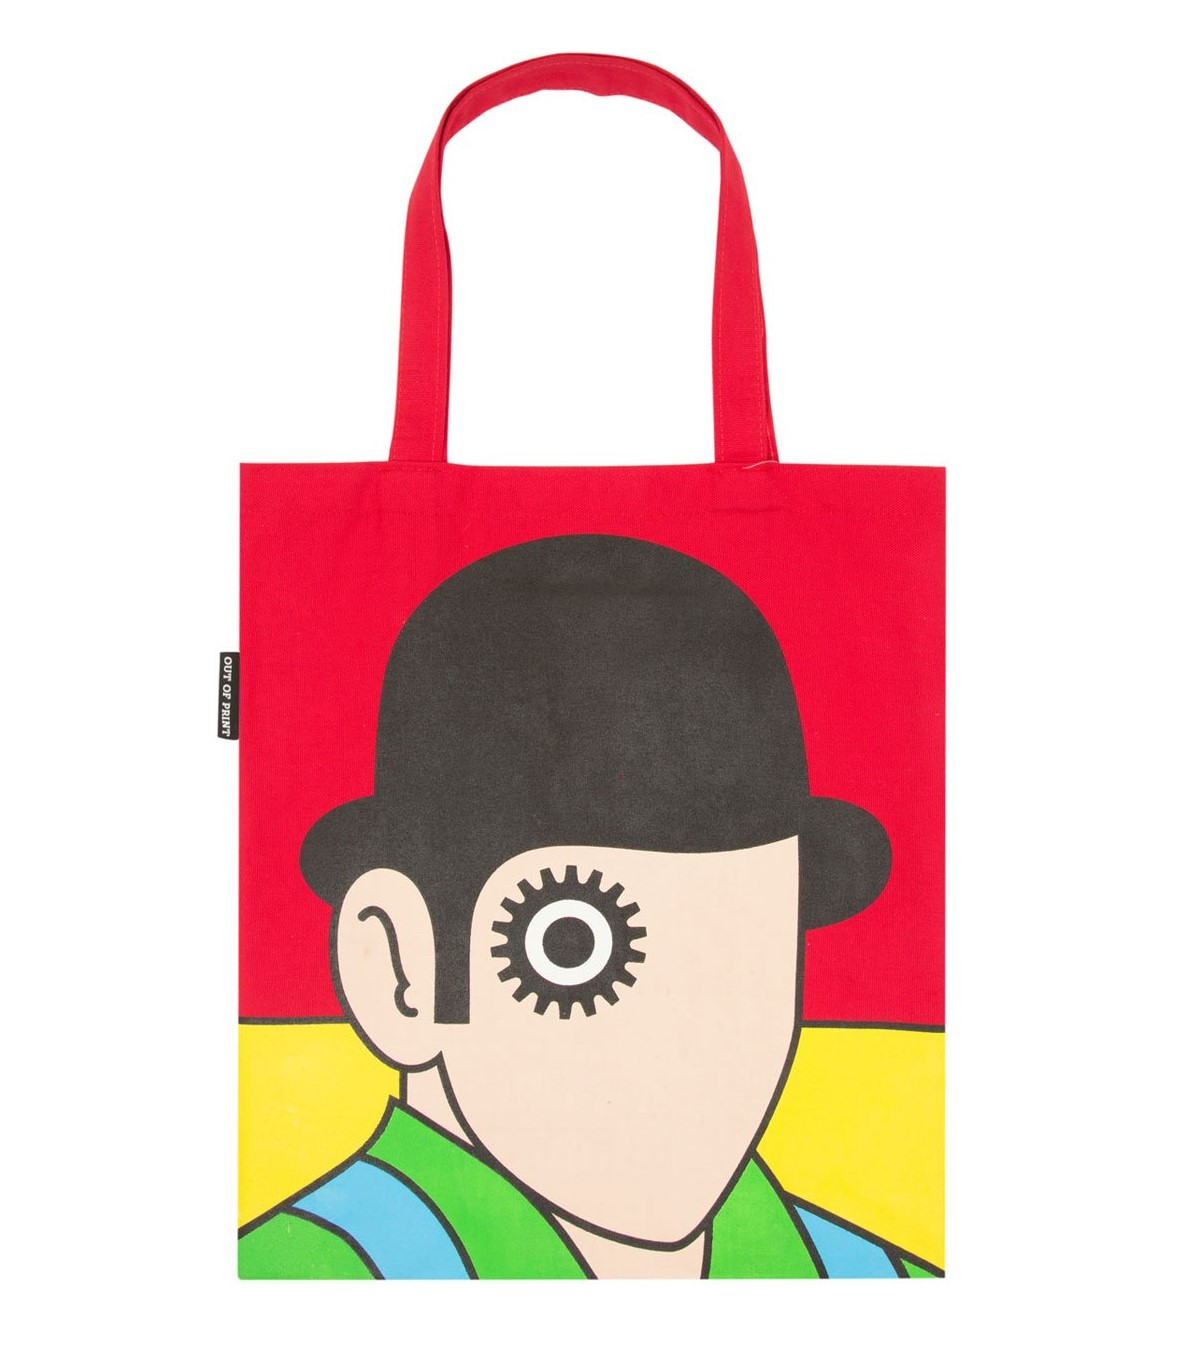 TOTE-2002_Clockwork-Orange-tote-front_01_1800x1800 (2)